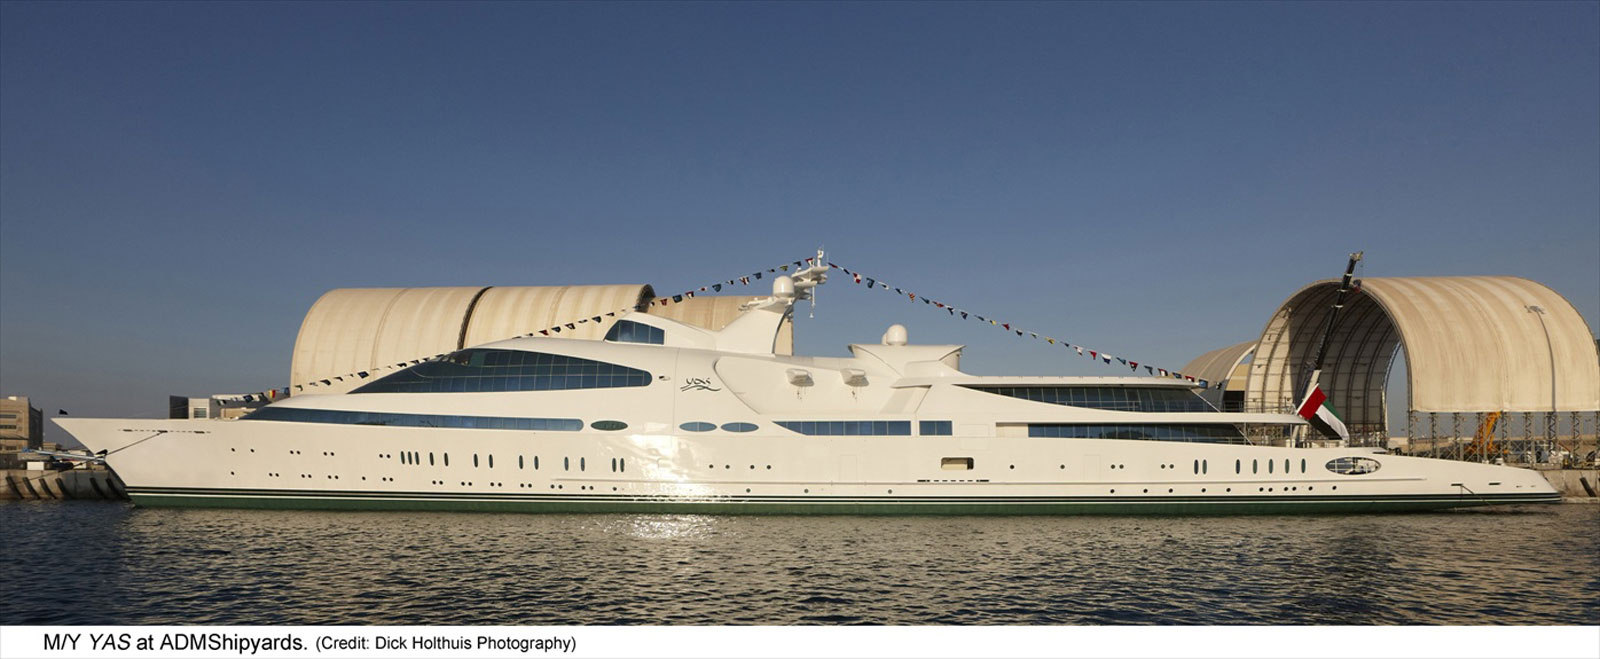 ADM Shipyards Launches Yay Supeyacht – World's 6th Largest Yacht